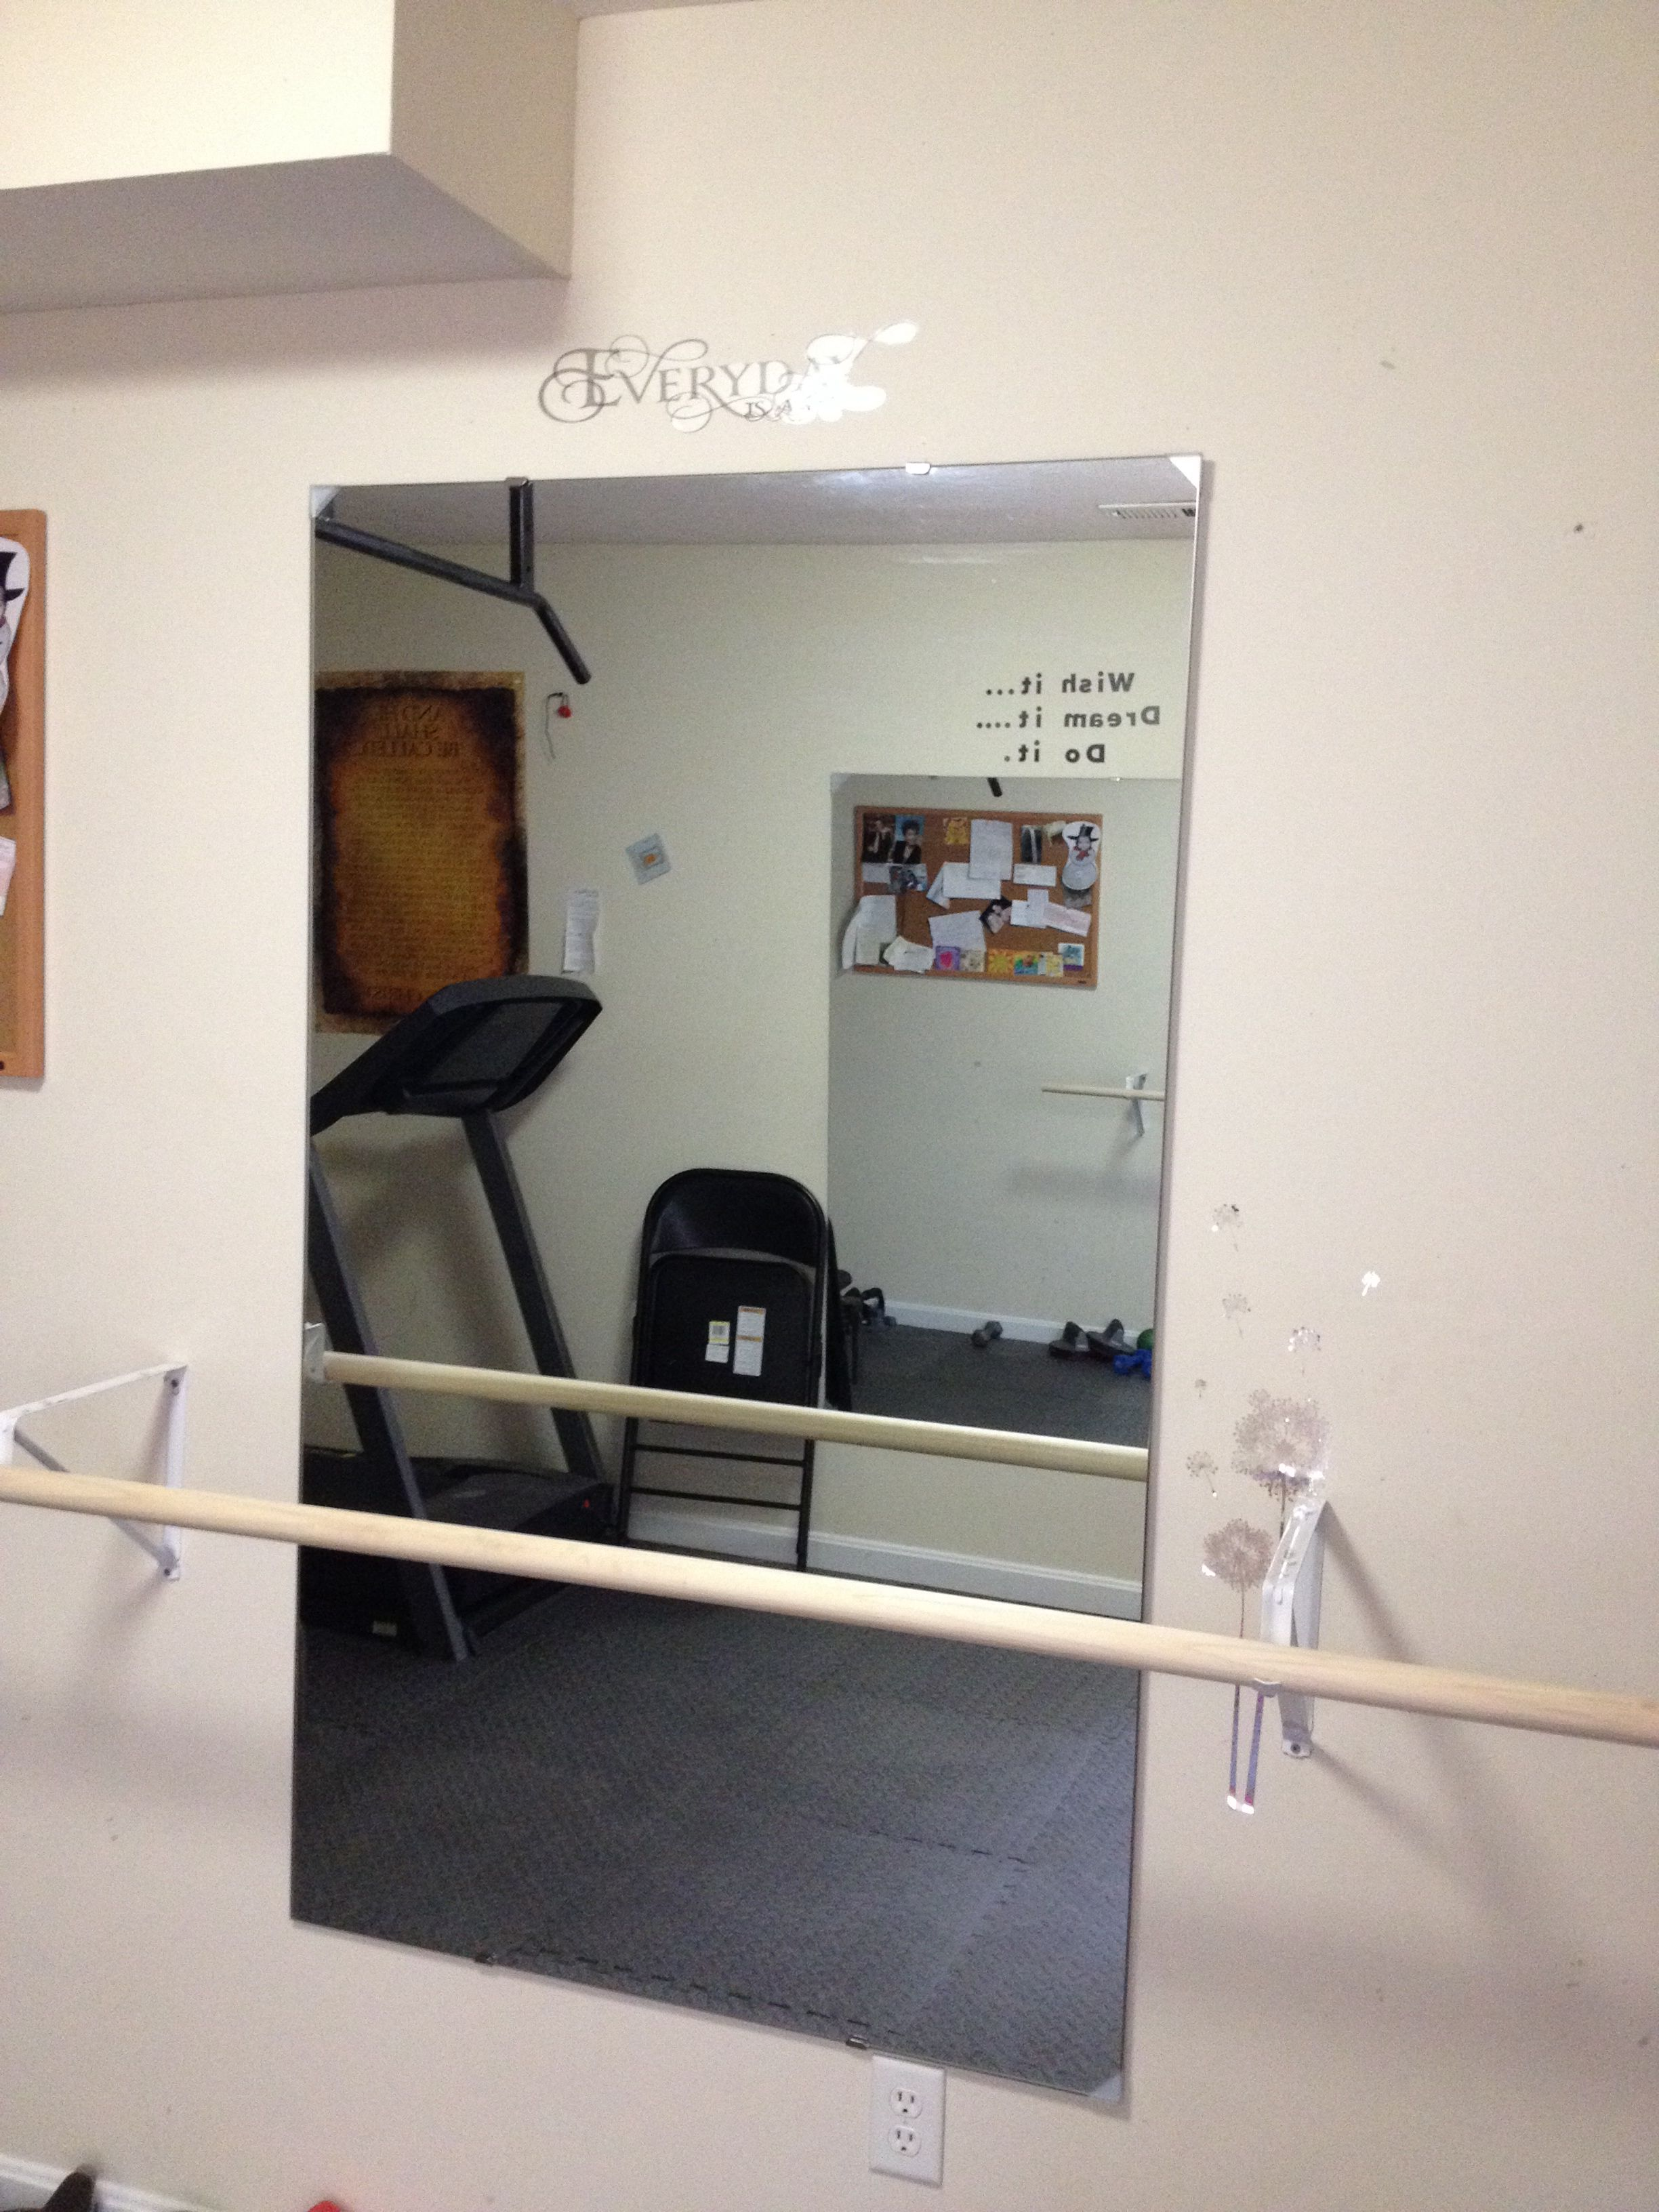 Diy Ballet Barre My Husband Created This For Me Using One Of The Smaller Mirrors In Our Workout Room With A 1 5 Dowel Offset From Wall Closet